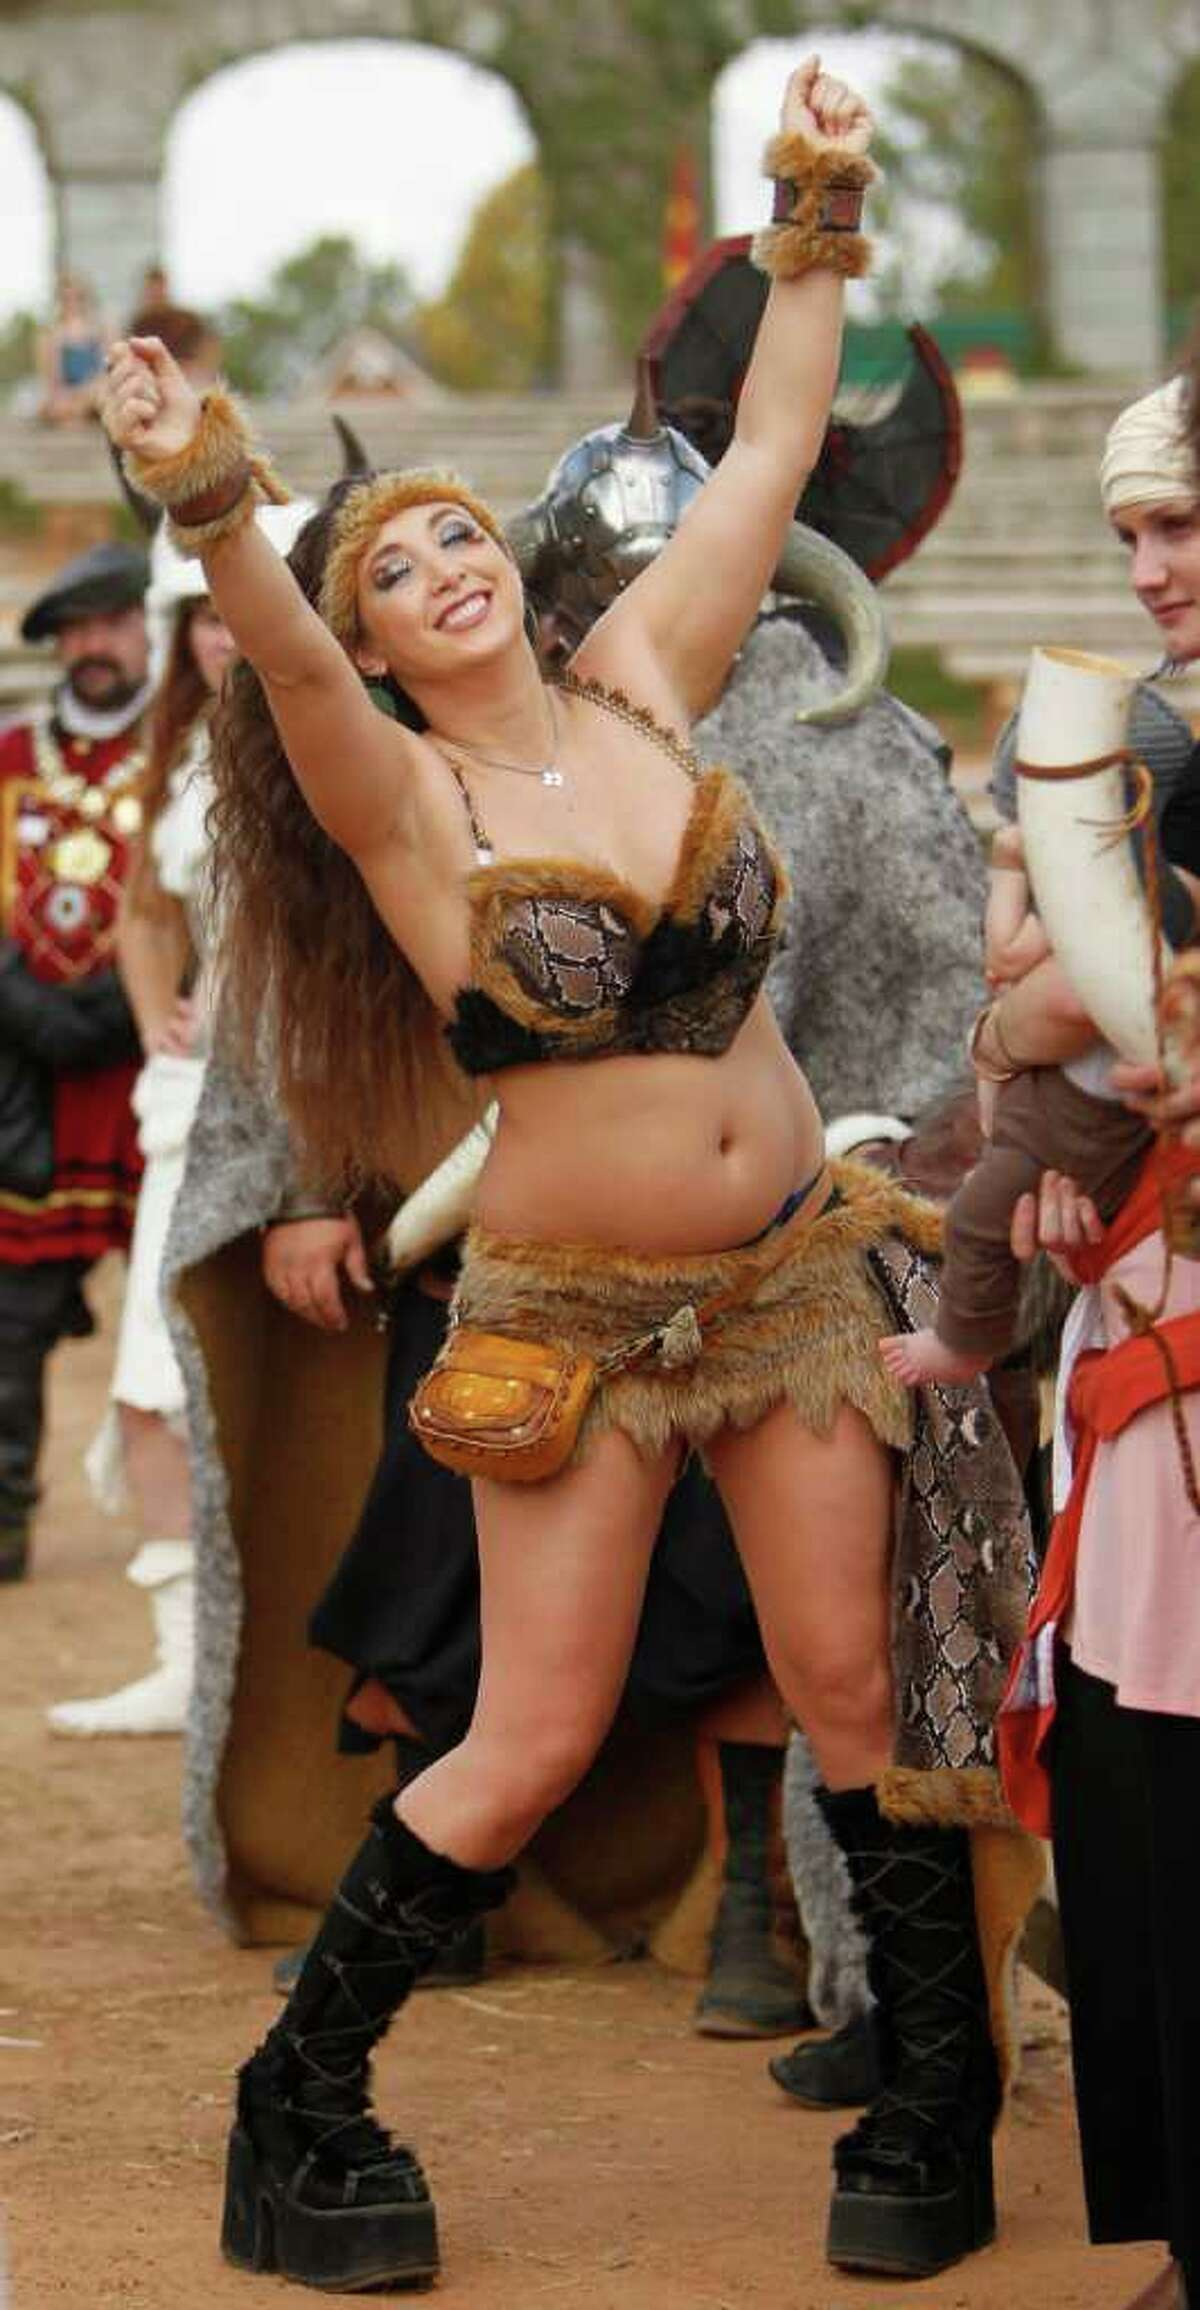 Participant Heather Pacheco won 3rd place for her barbarian costume during the Best Dressed Barbarian Contest at the Renaissance Festival on Sunday, Nov. 20, 2011, in Plantersville.